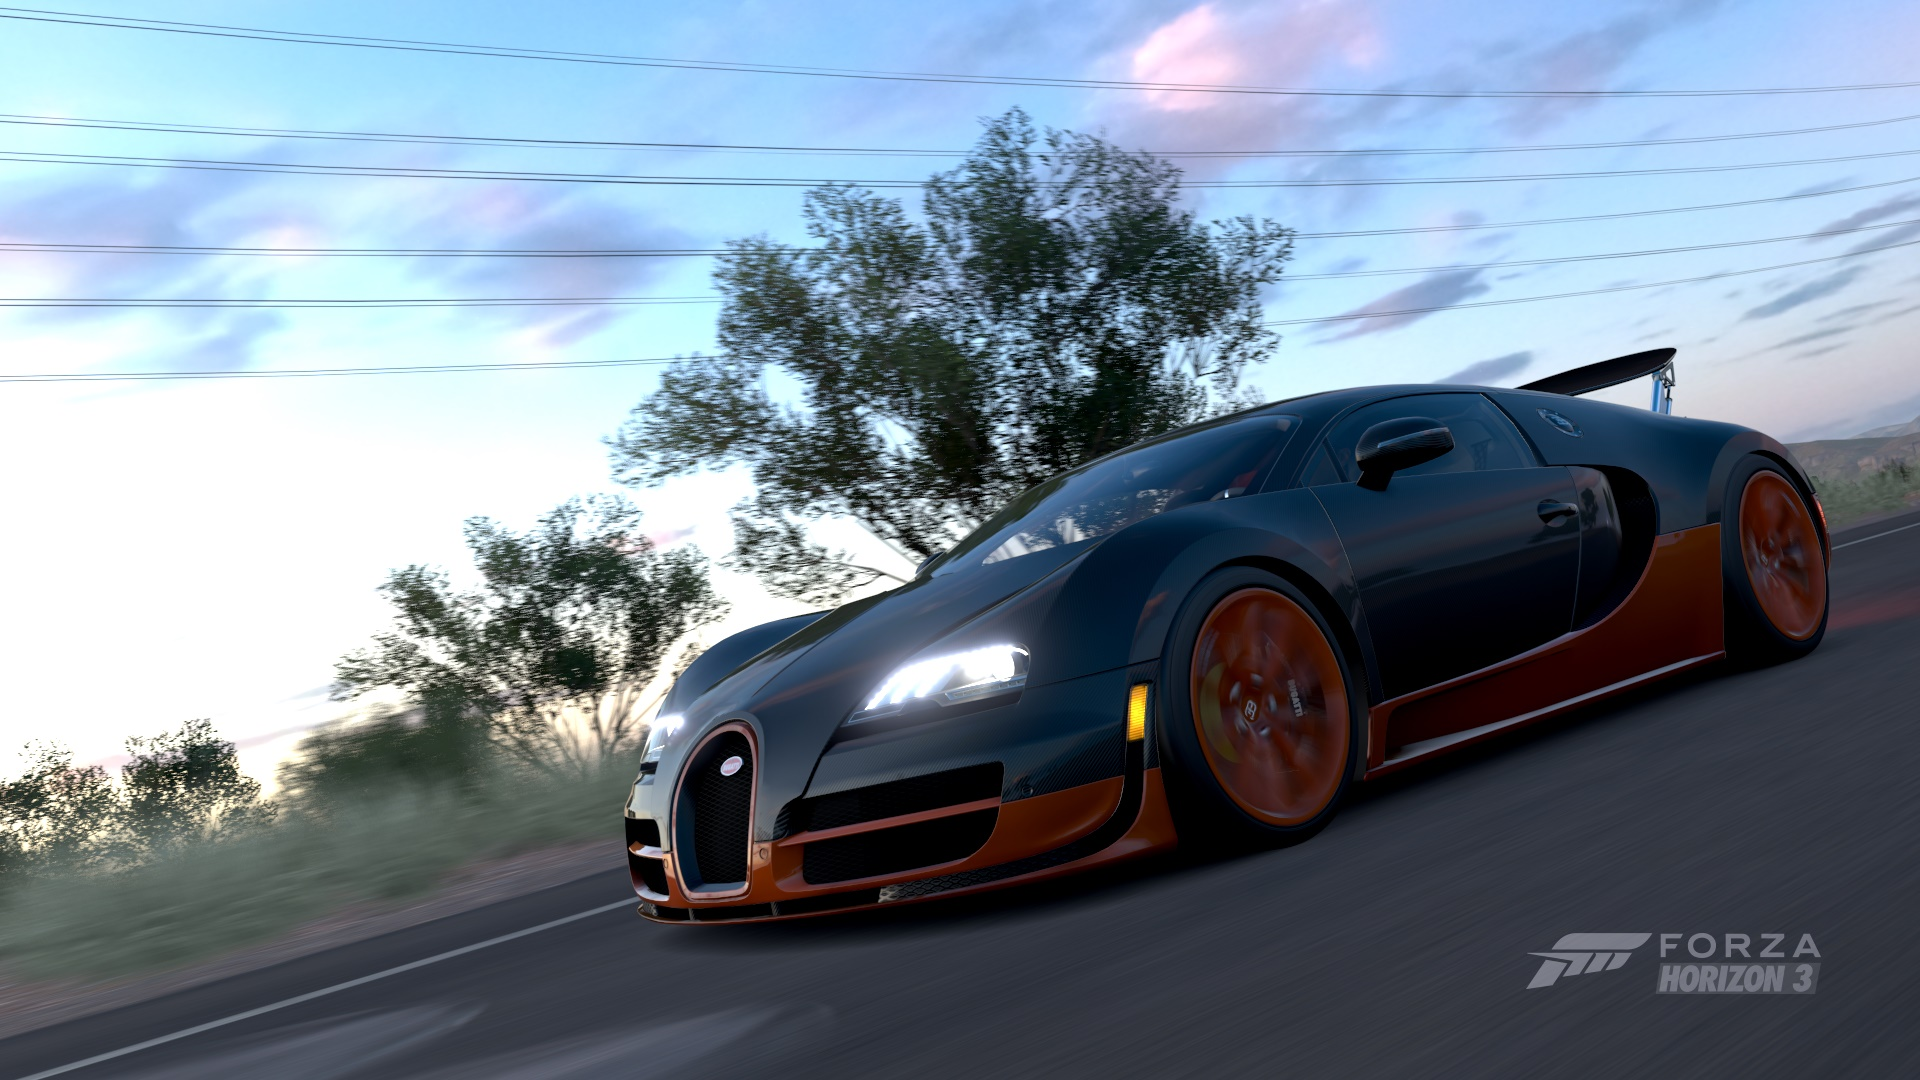 Bugatti car PNG images free download